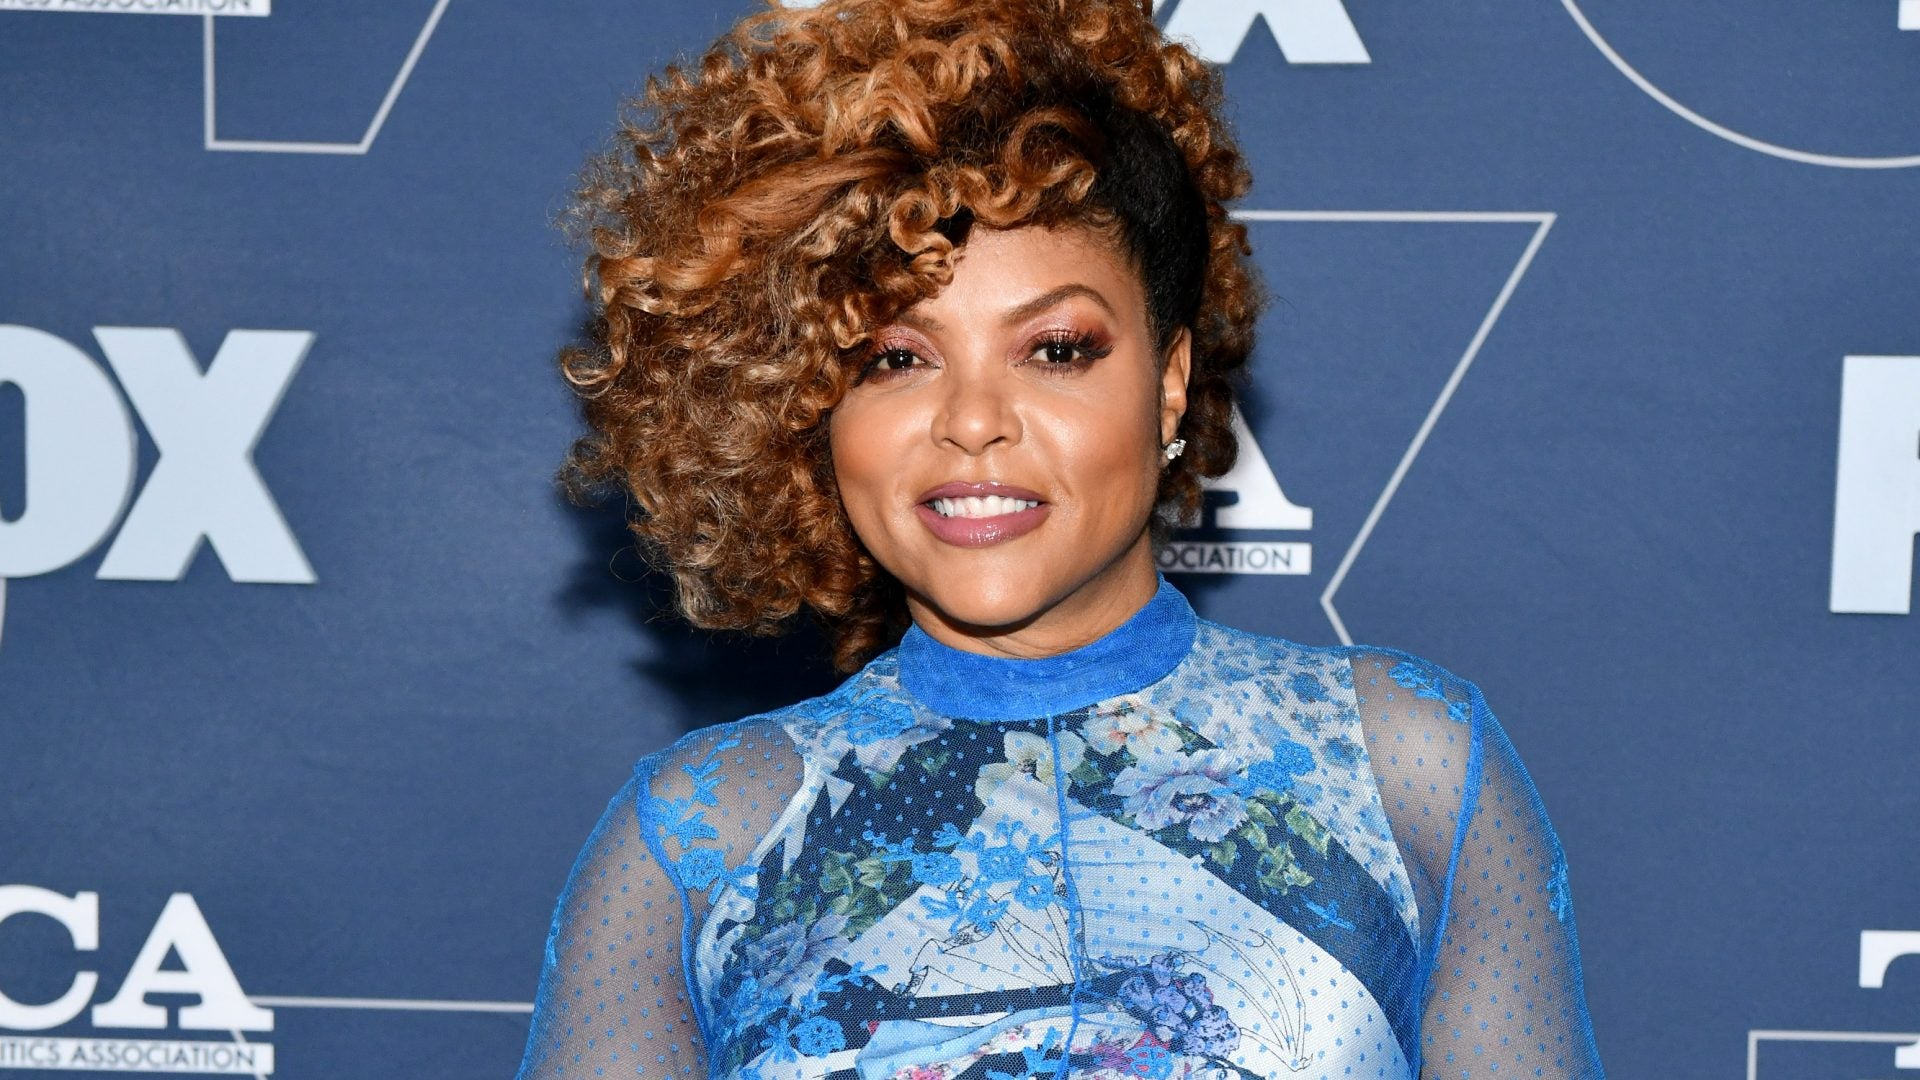 Taraji P. Henson Offers Free Virtual Therapy Sessions During Coronavirus Pandemic